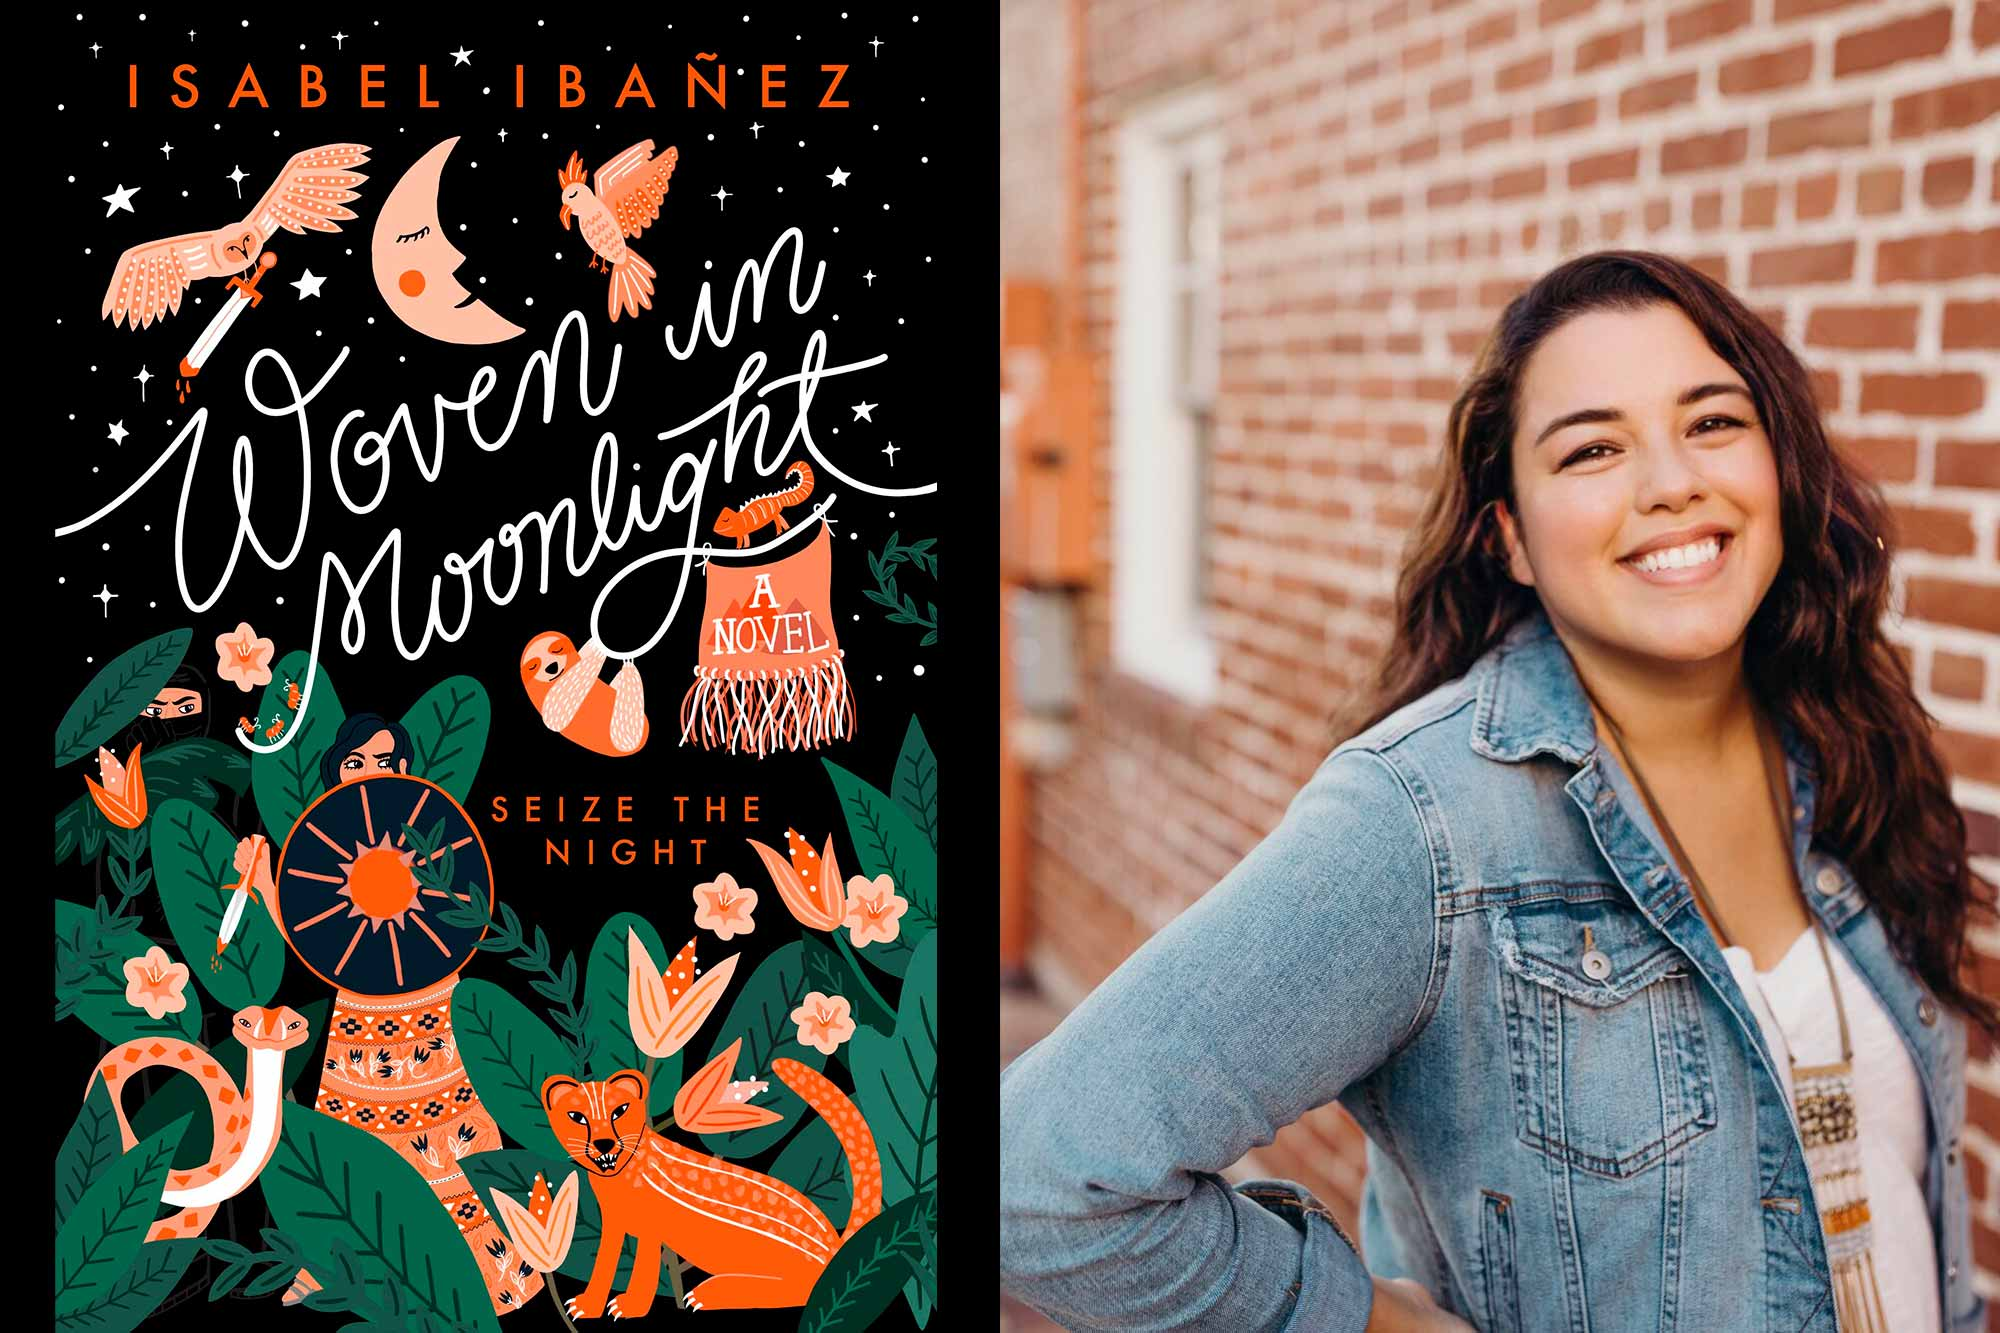 Isabel Ibañez on Woven in Moonlight